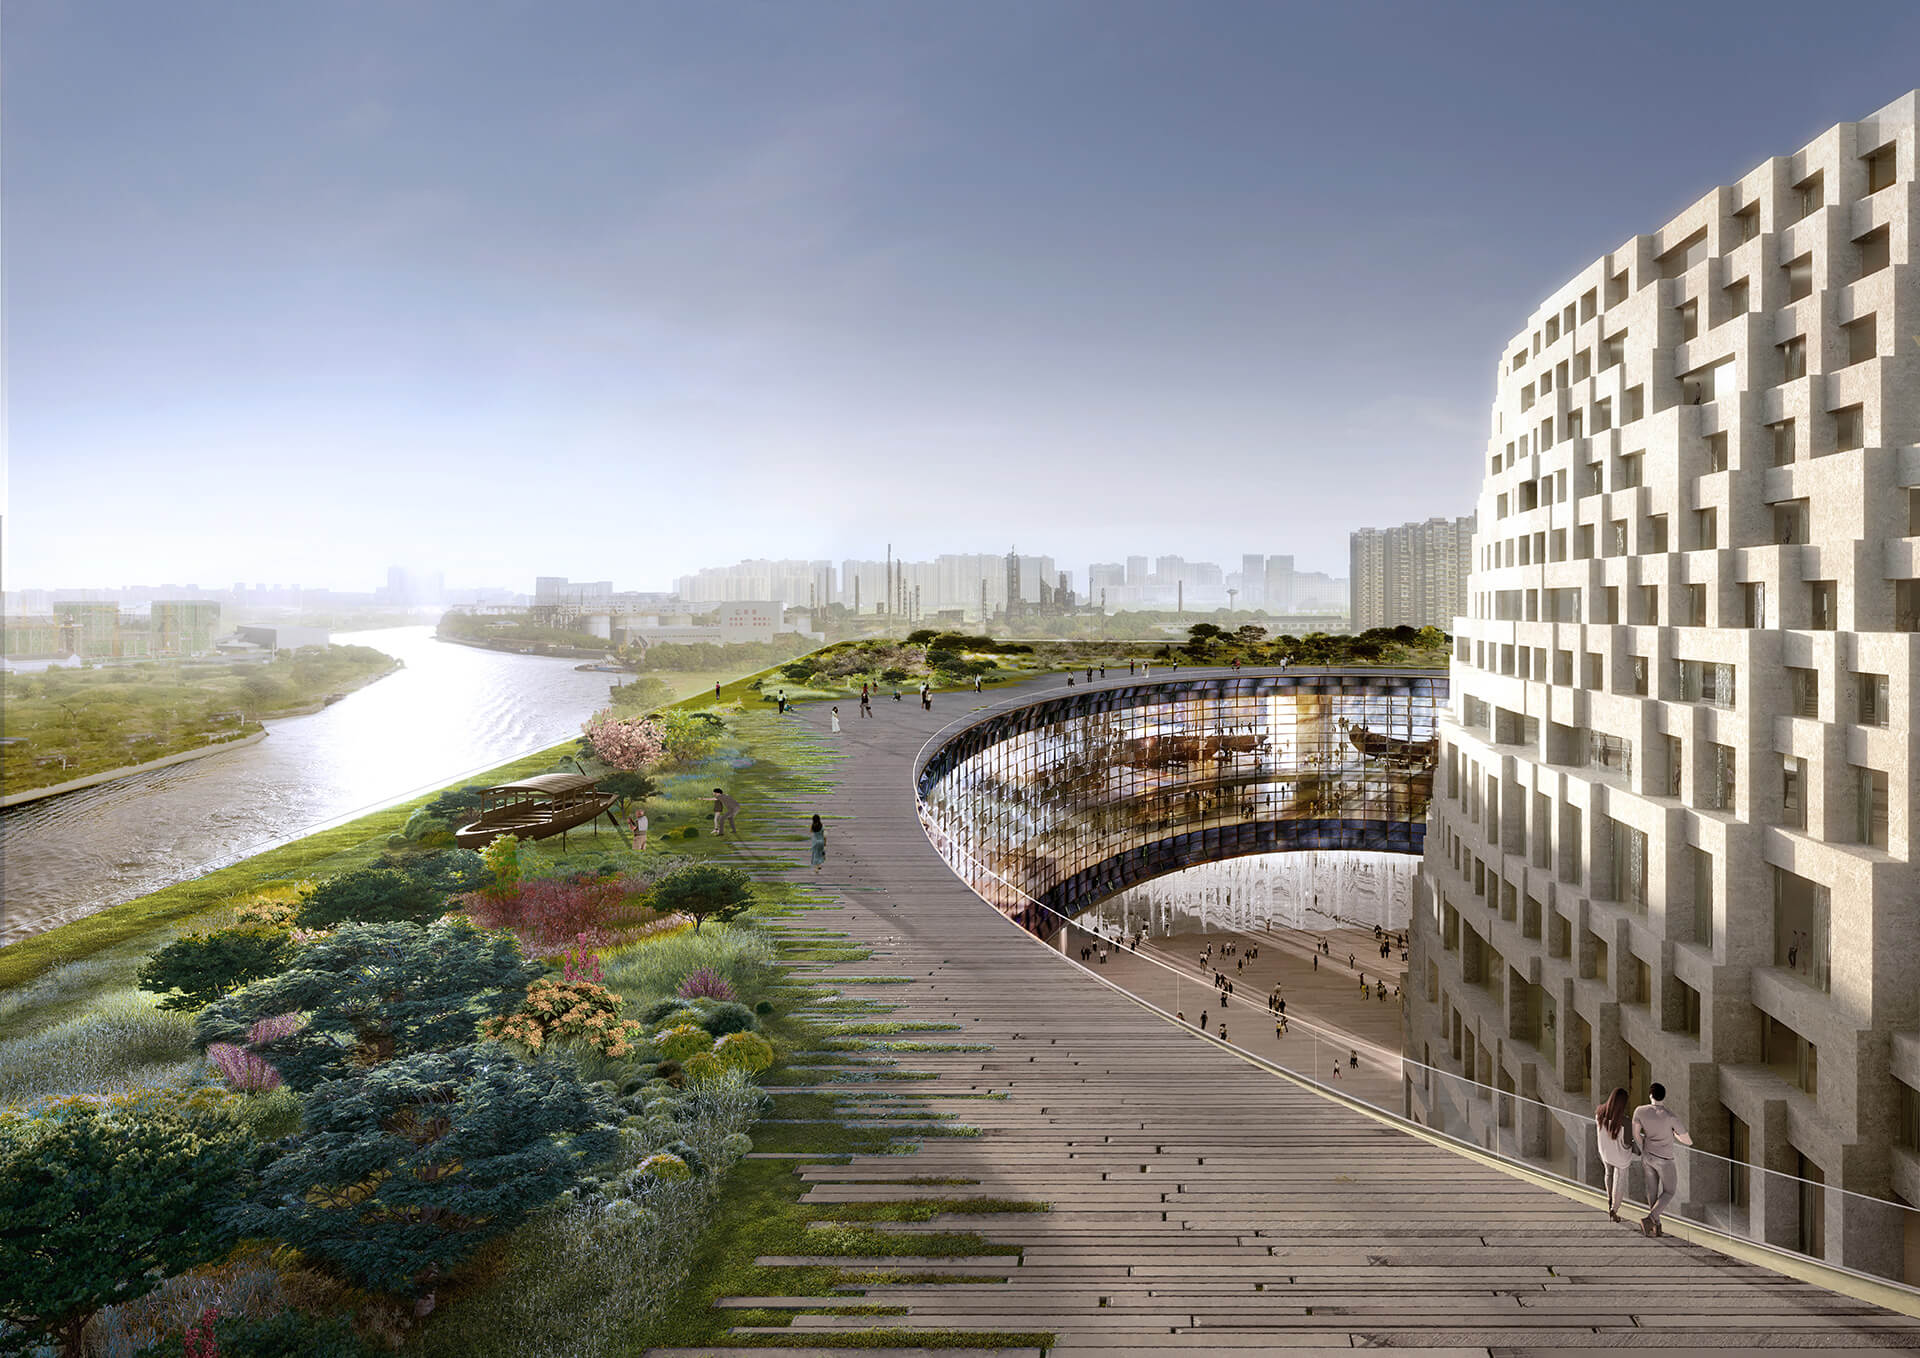 The green terrace of the museum overlooking the Grand Canal | Grand Canal Museum | Herzog & de Meuron | STIRworld